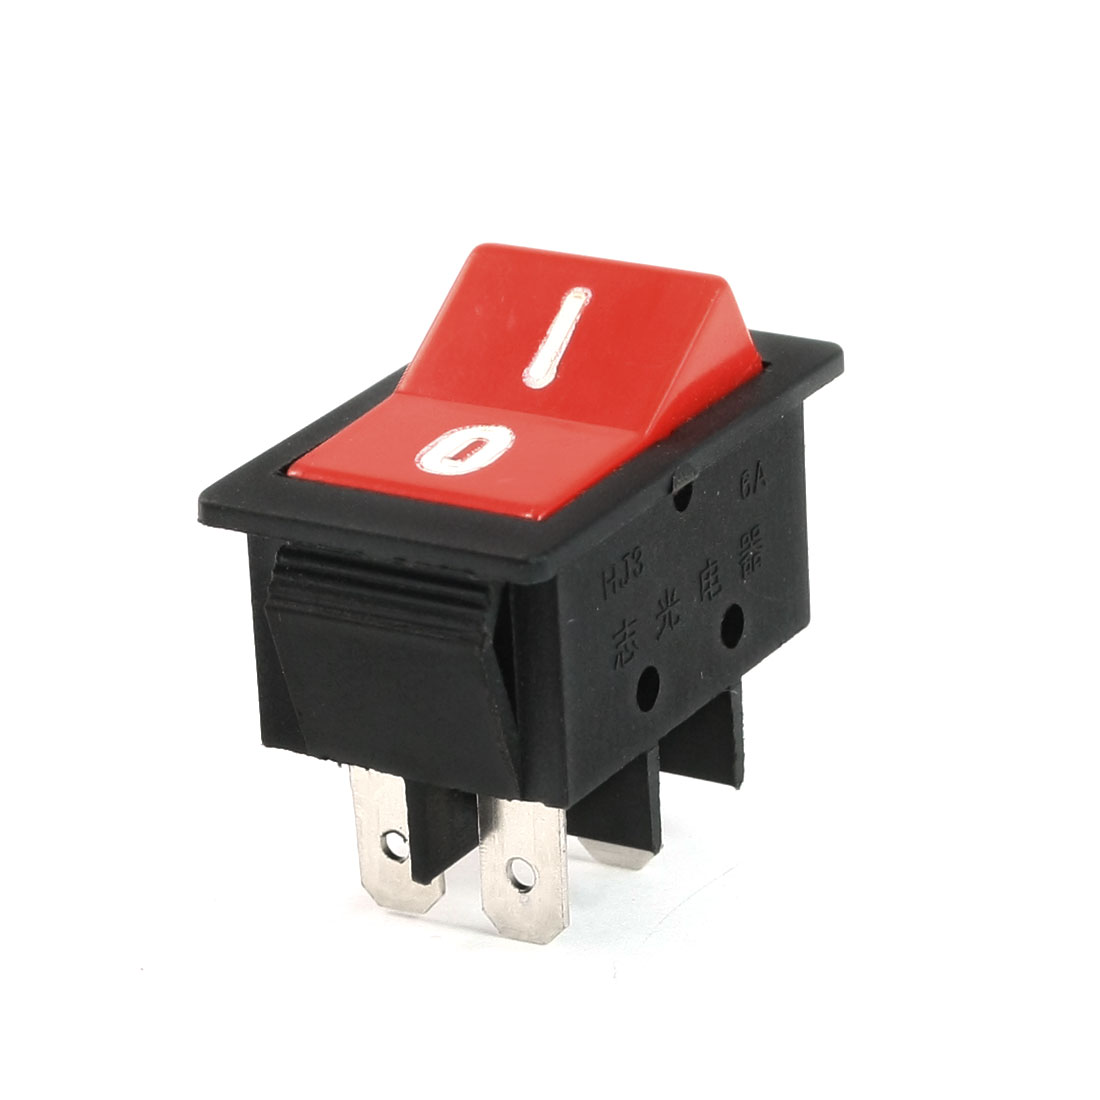 AC 250V/10A 125V/15A Double Pole Dual Throw On/Off Rocker Switch